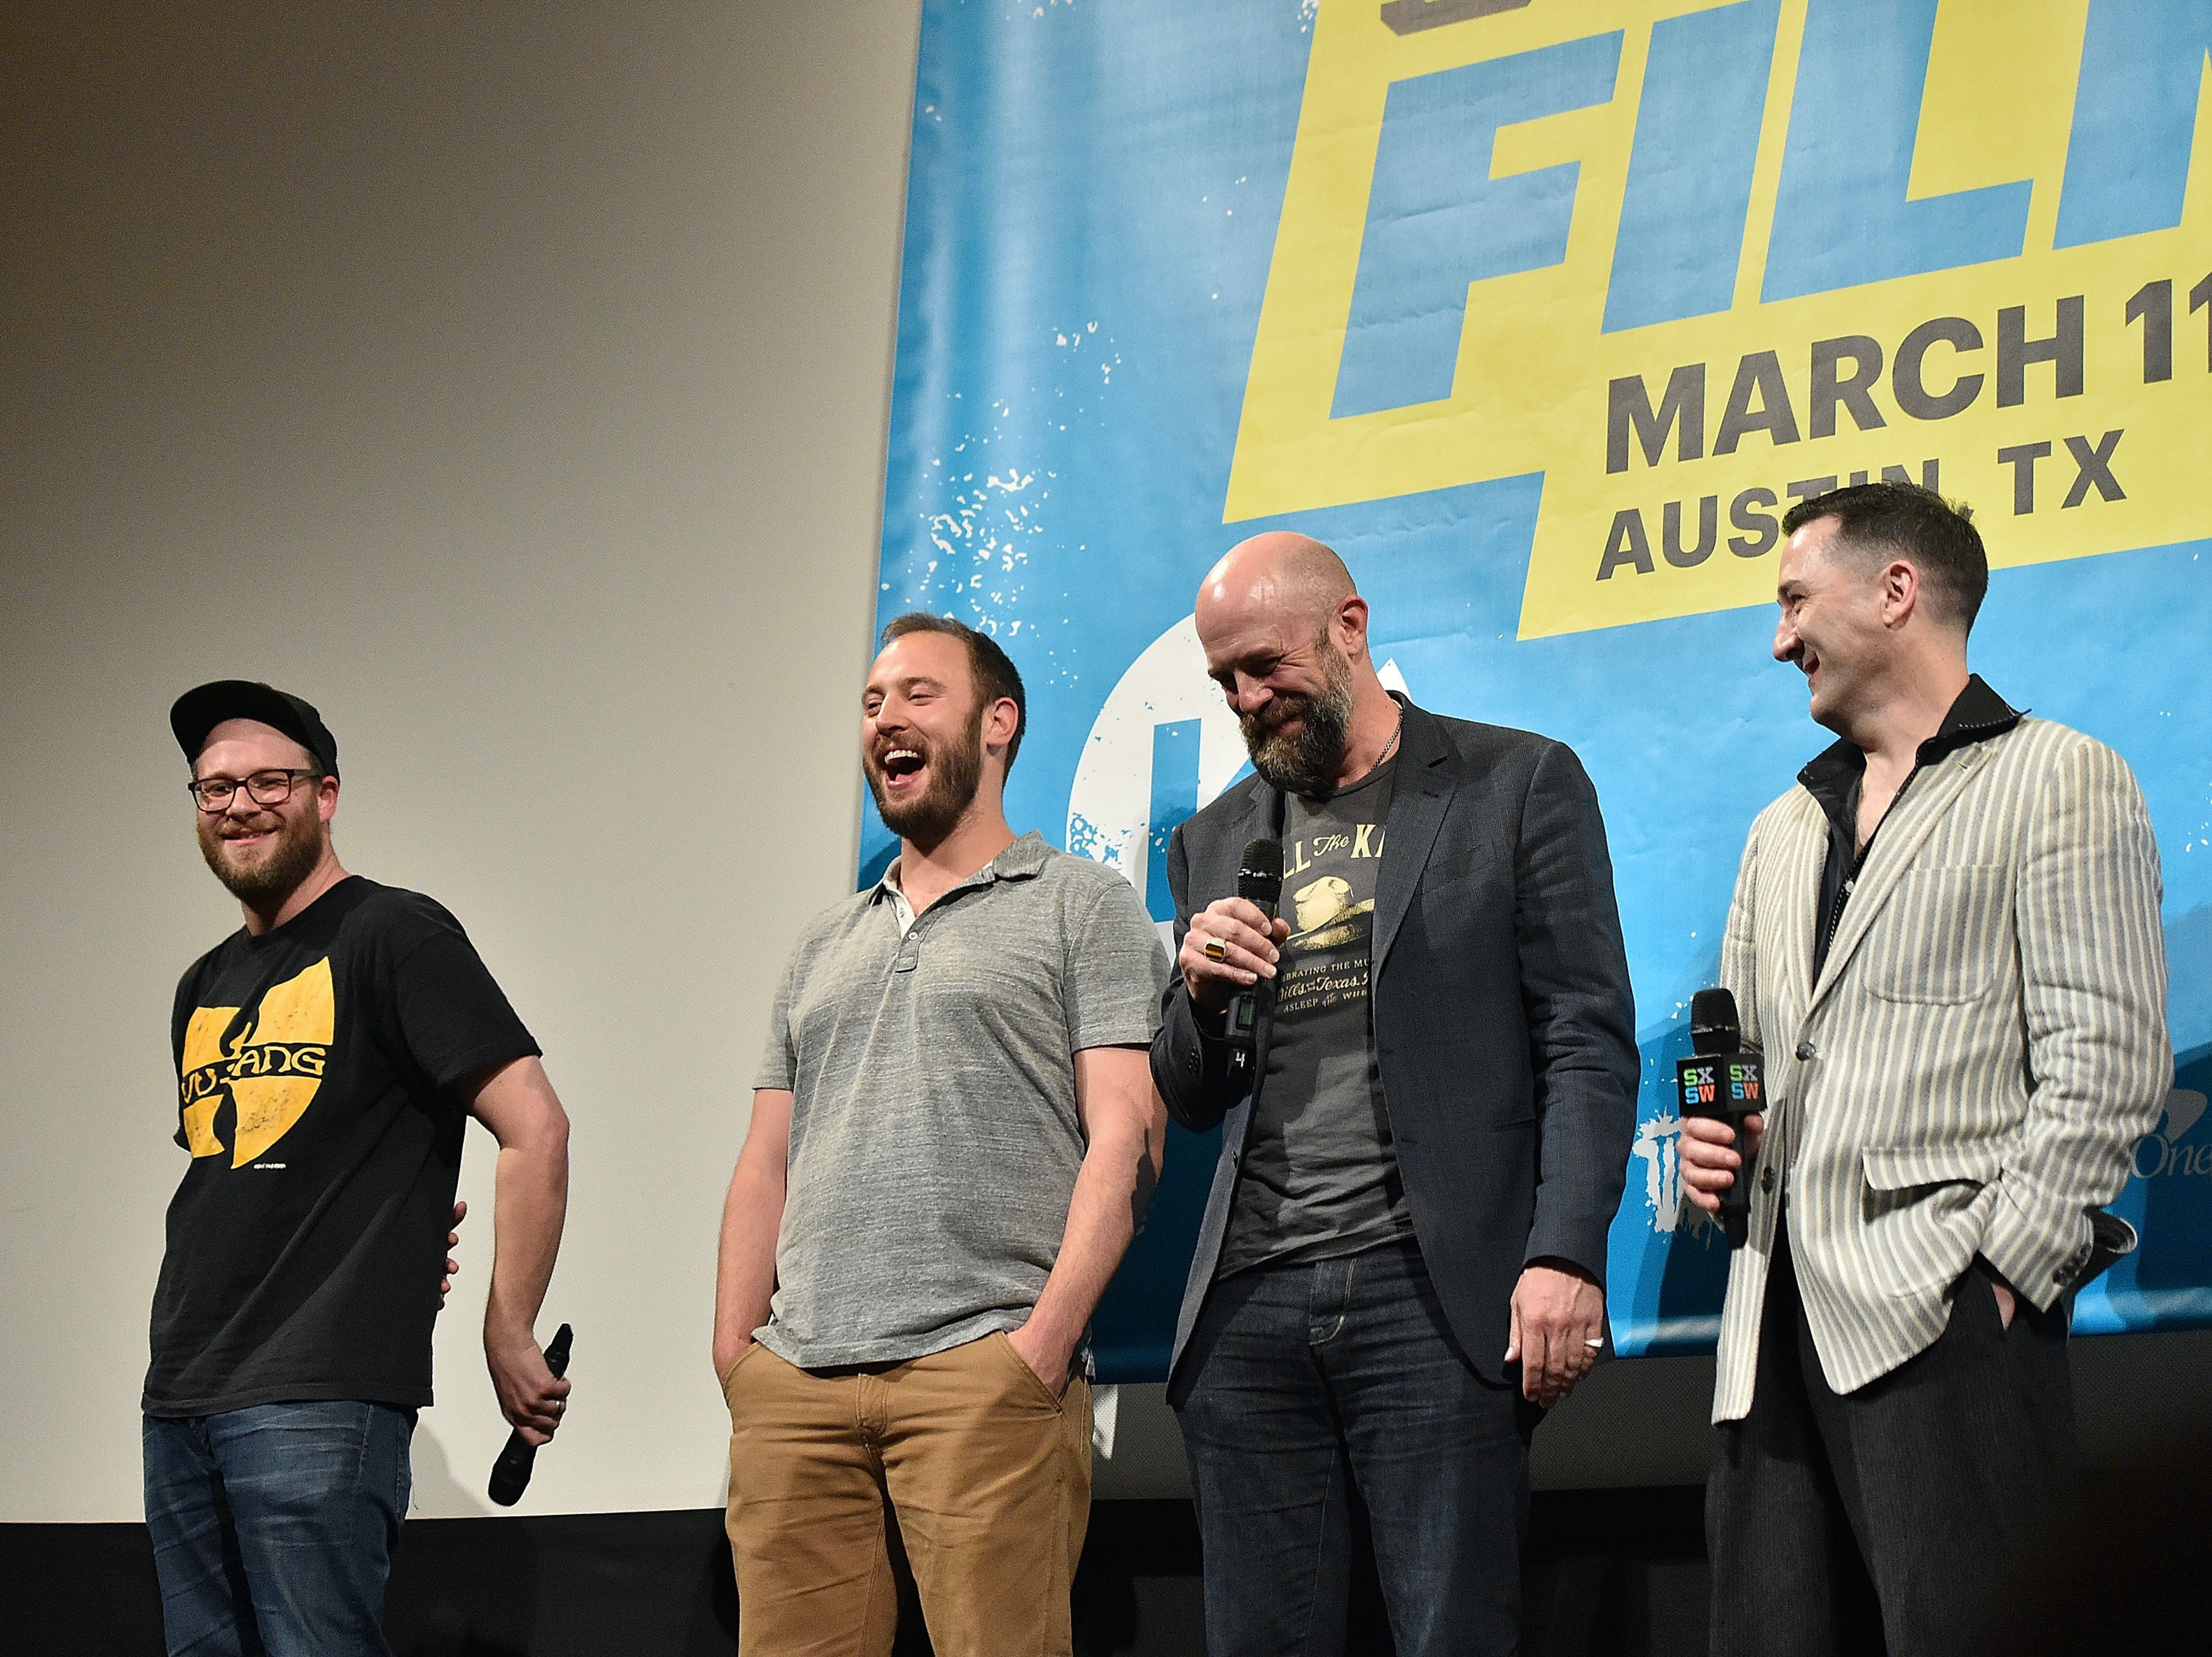 AUSTIN, TX - MARCH 14: (L-R) Seth Rogen, Evan Goldberg, Conrad Vernon and Greg Tiernan attend the premiere of 'Sausage Party (Work In Progress)' during the 2016 SXSW Music, Film + Interactive Festival at Paramount Theatre on March 14, 2016 in Austin, Texas.  (Photo by Mike Windle/Getty Images for SXSW)